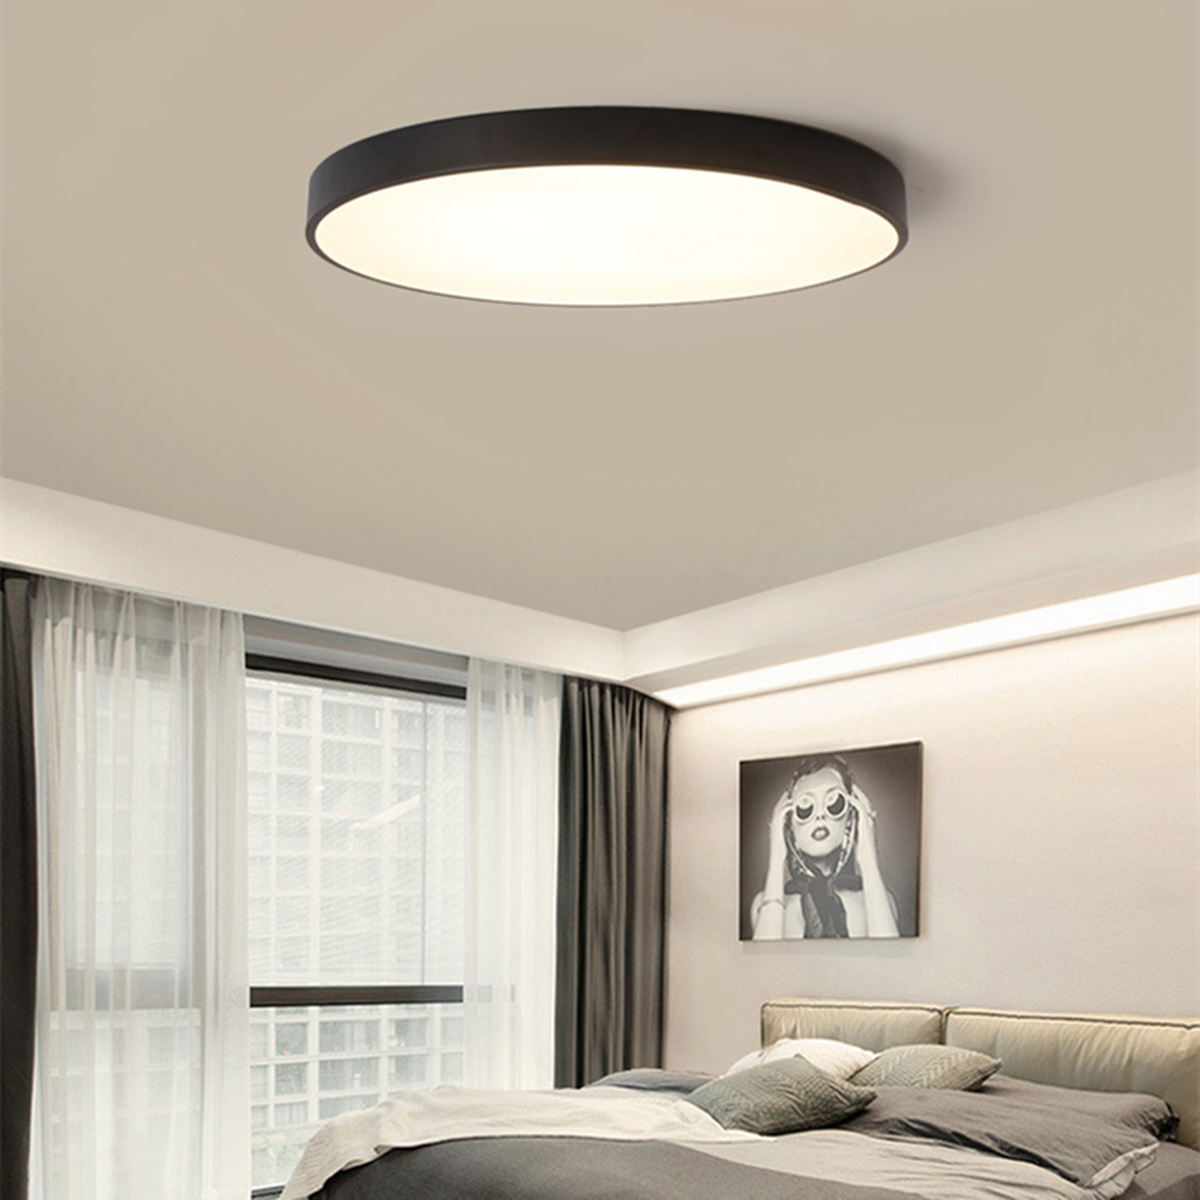 Round Led Ceiling Down Light Fixture White Light Warm Light Home Bedroom Living Room Surface Mount Lamp Walmart Canada